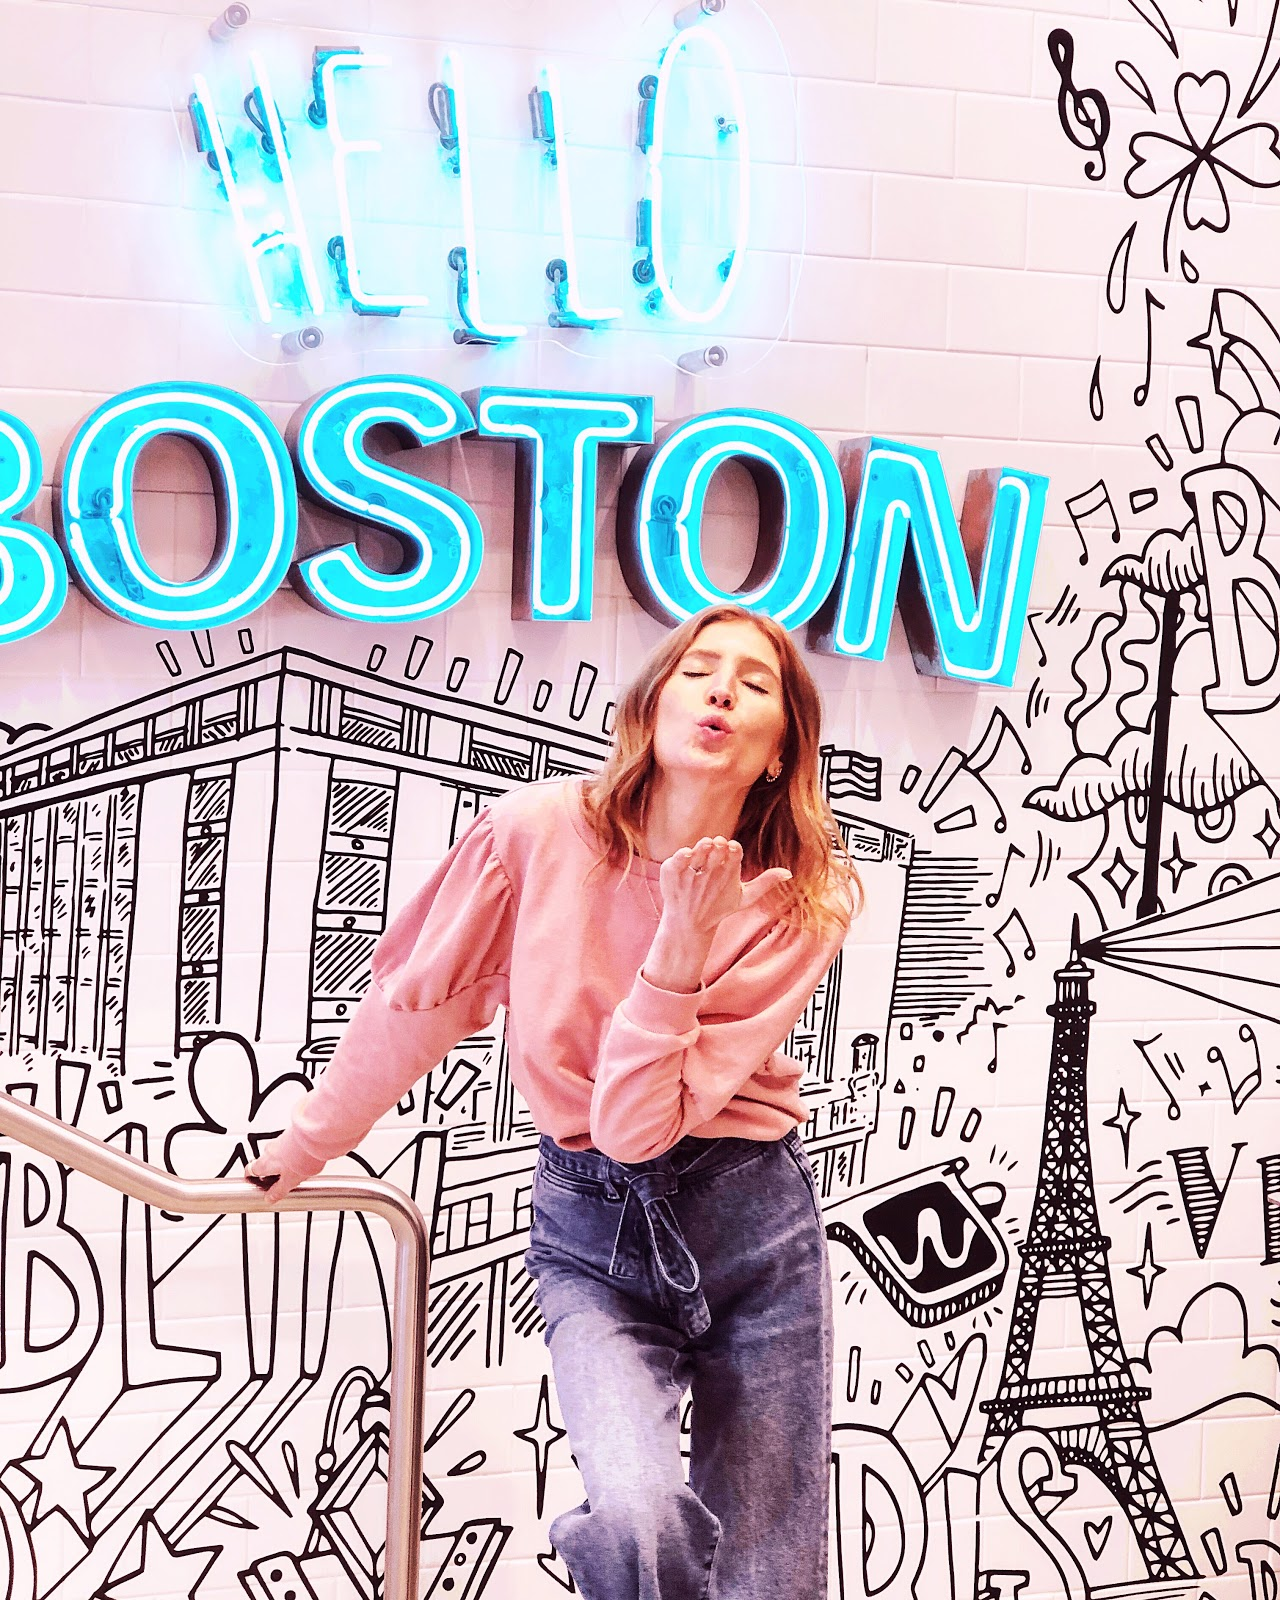 Boston Travel Vlog, what to do in Boston, Primark Shopping Haul